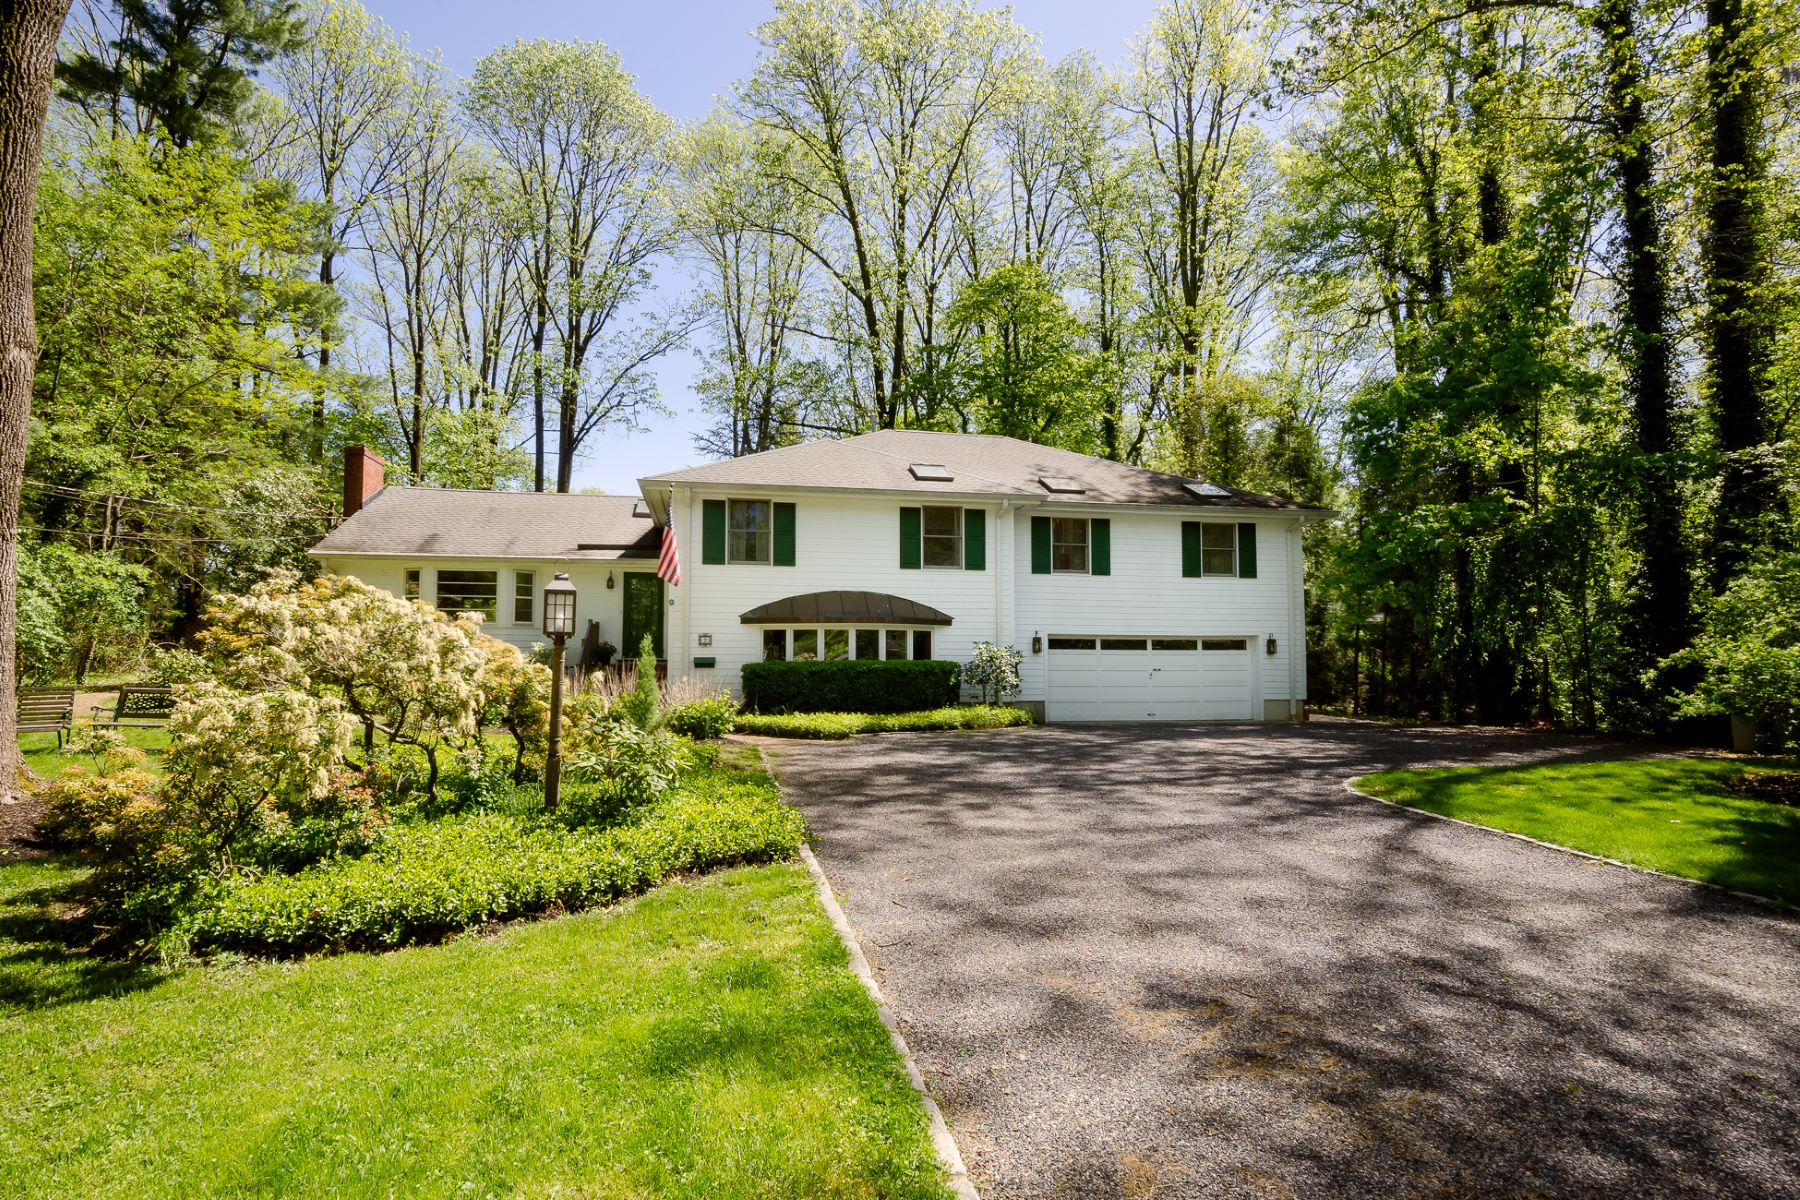 Property voor Verkoop op Versatility and Spaciousness in Western Section 9 Pardoe Road, Princeton, New Jersey 08540 Verenigde Staten